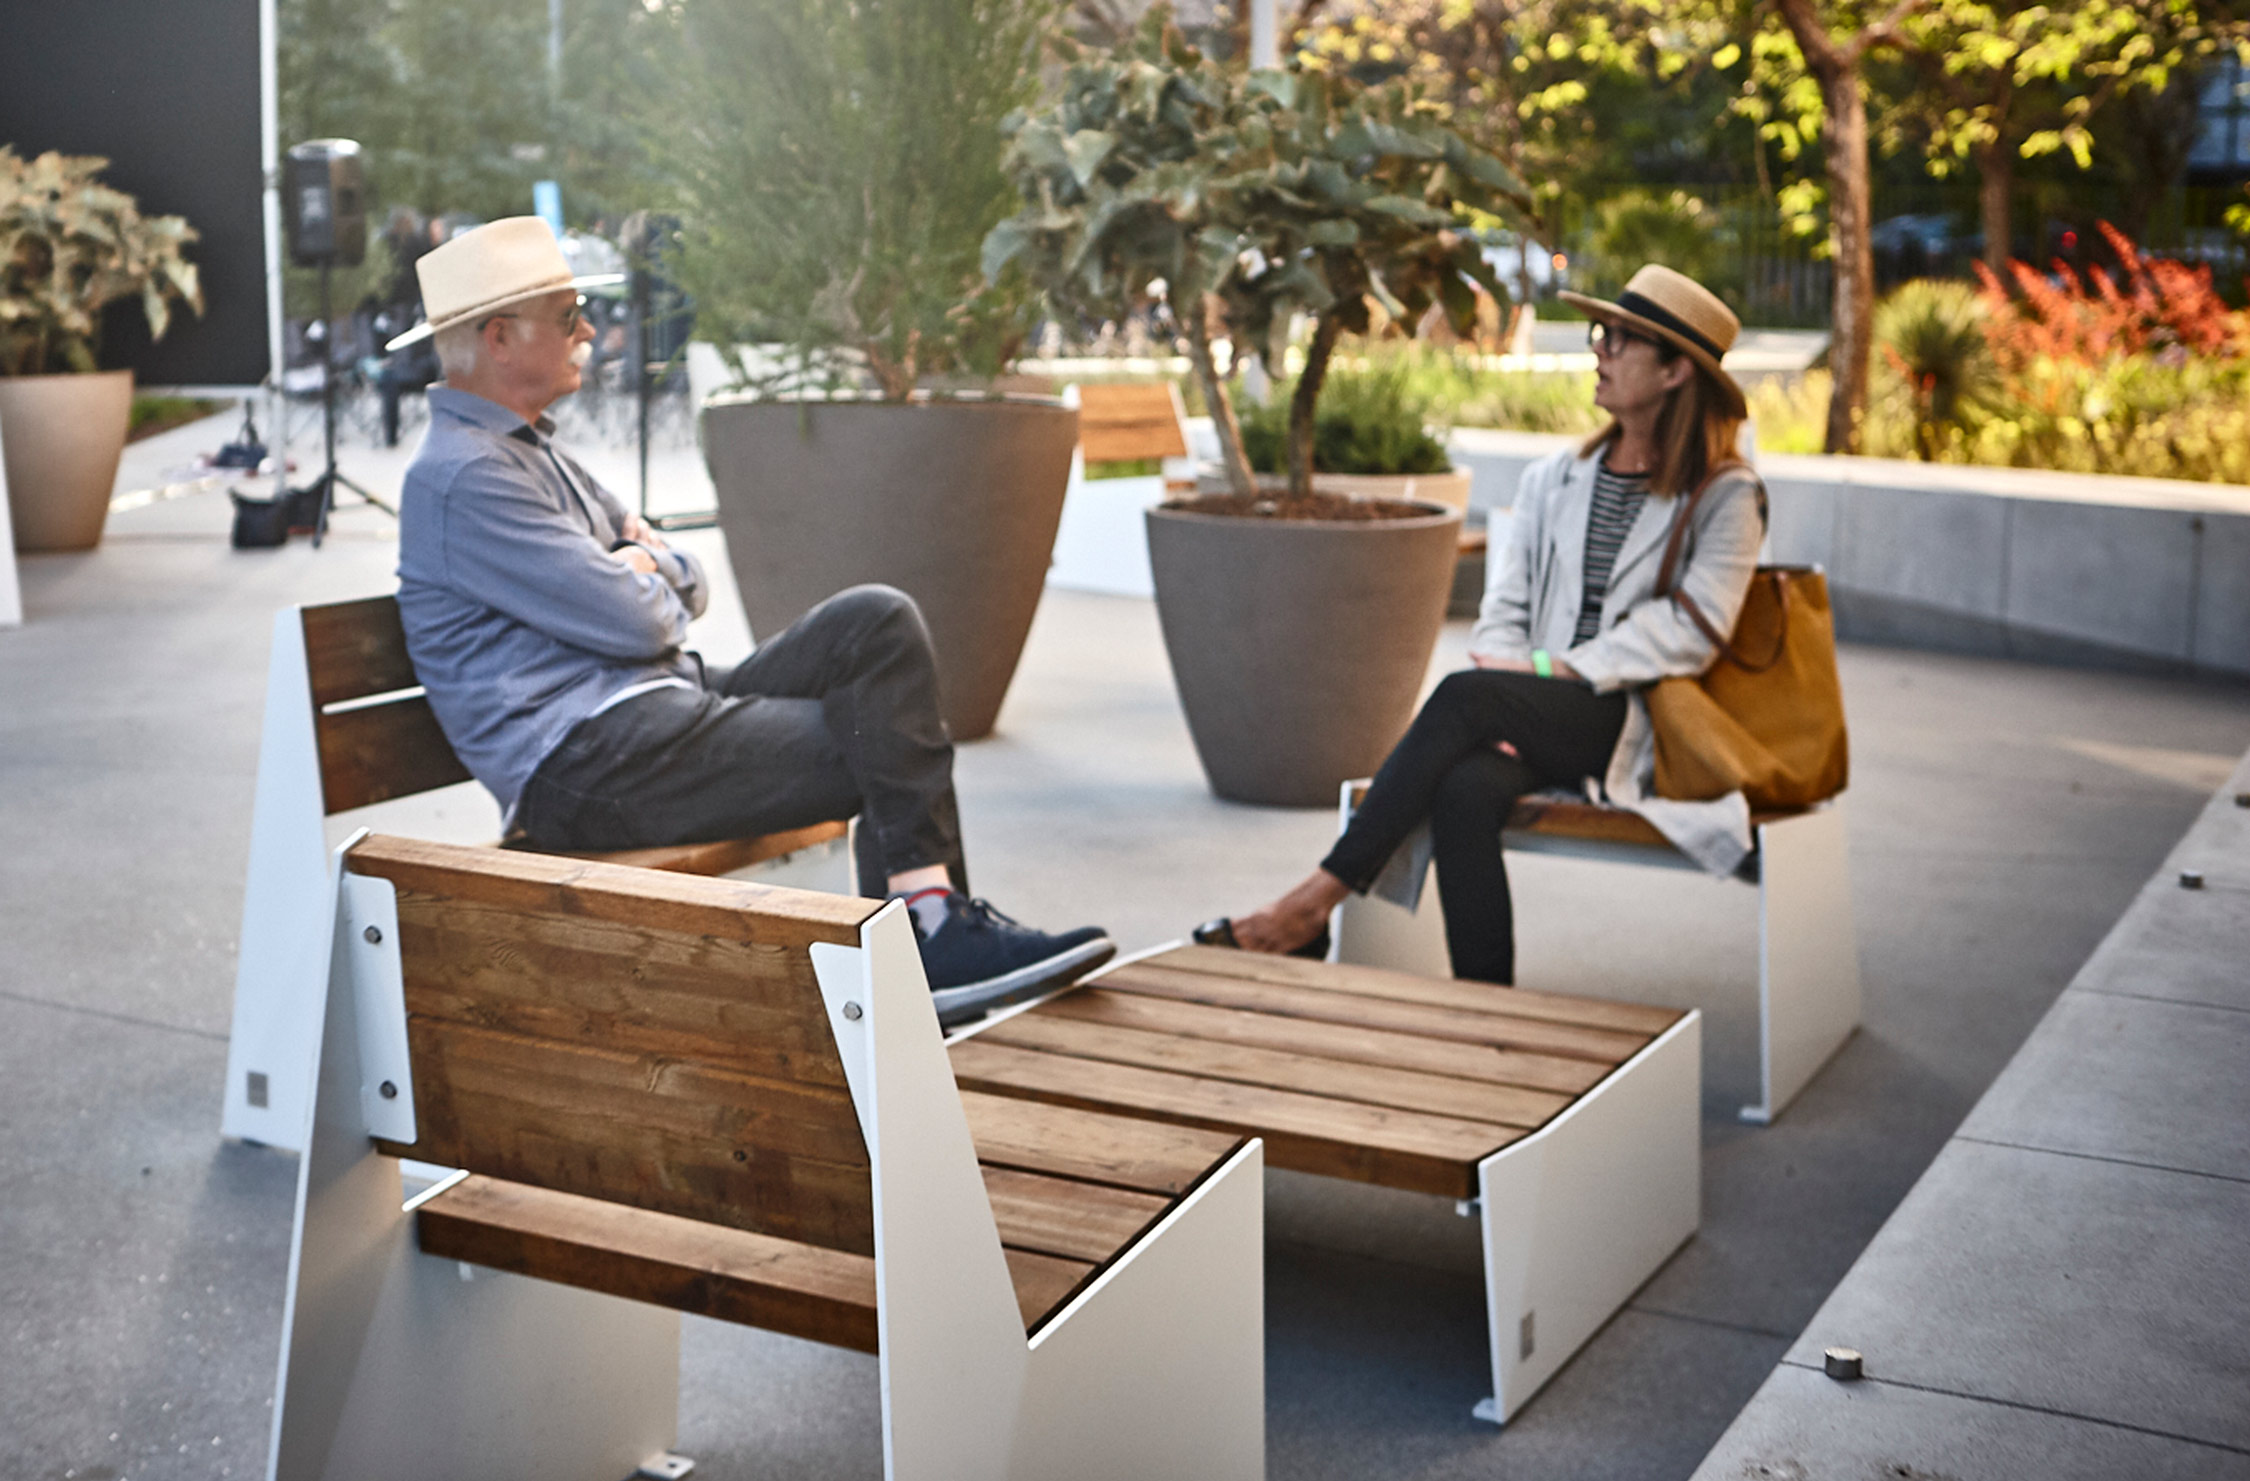 people seated on wooden furniture with planters behind them